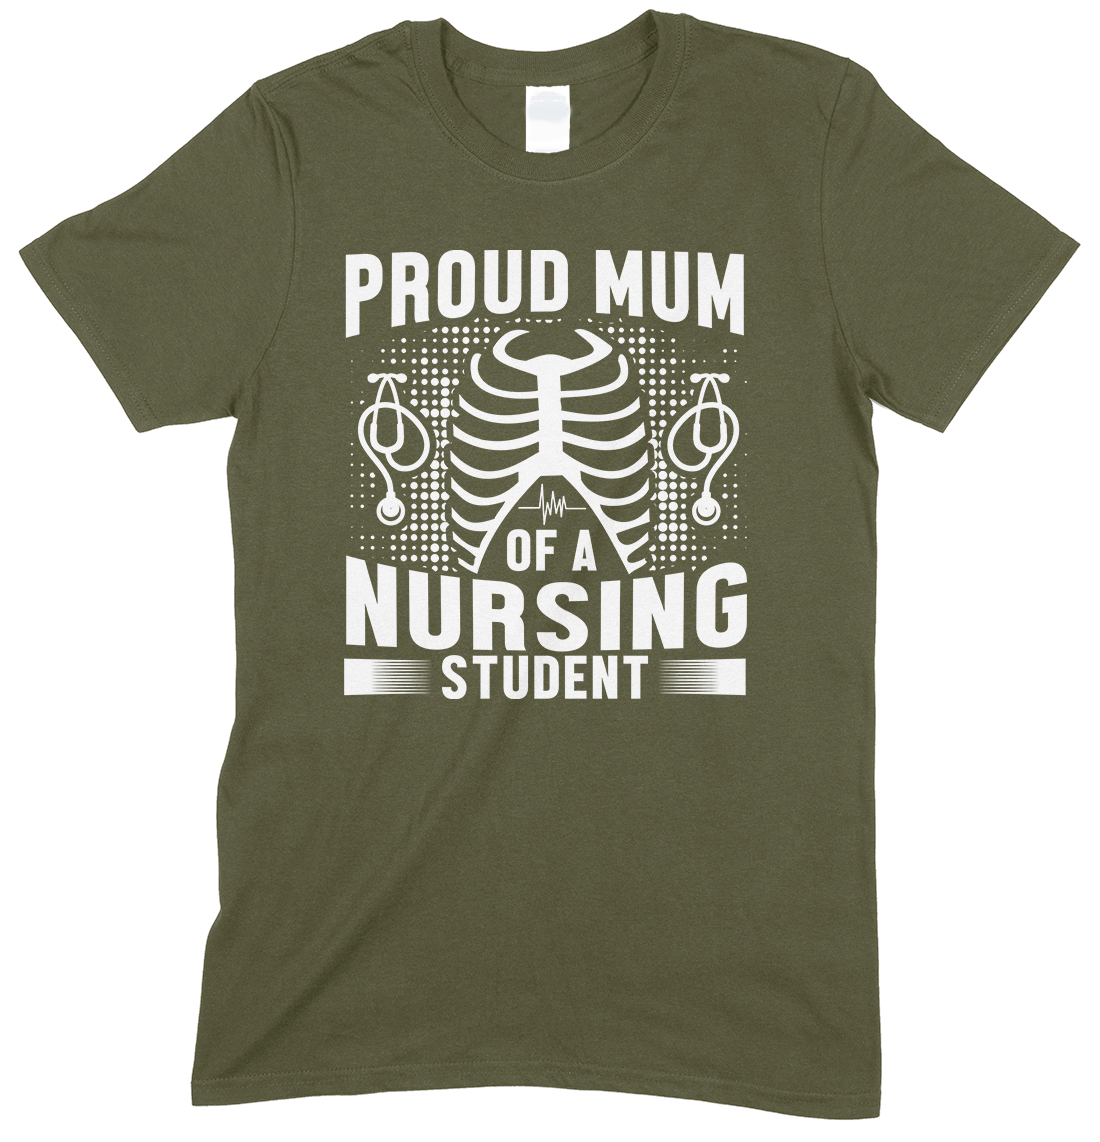 Proud Mum of A Nursing Student-Unisex T Shirt